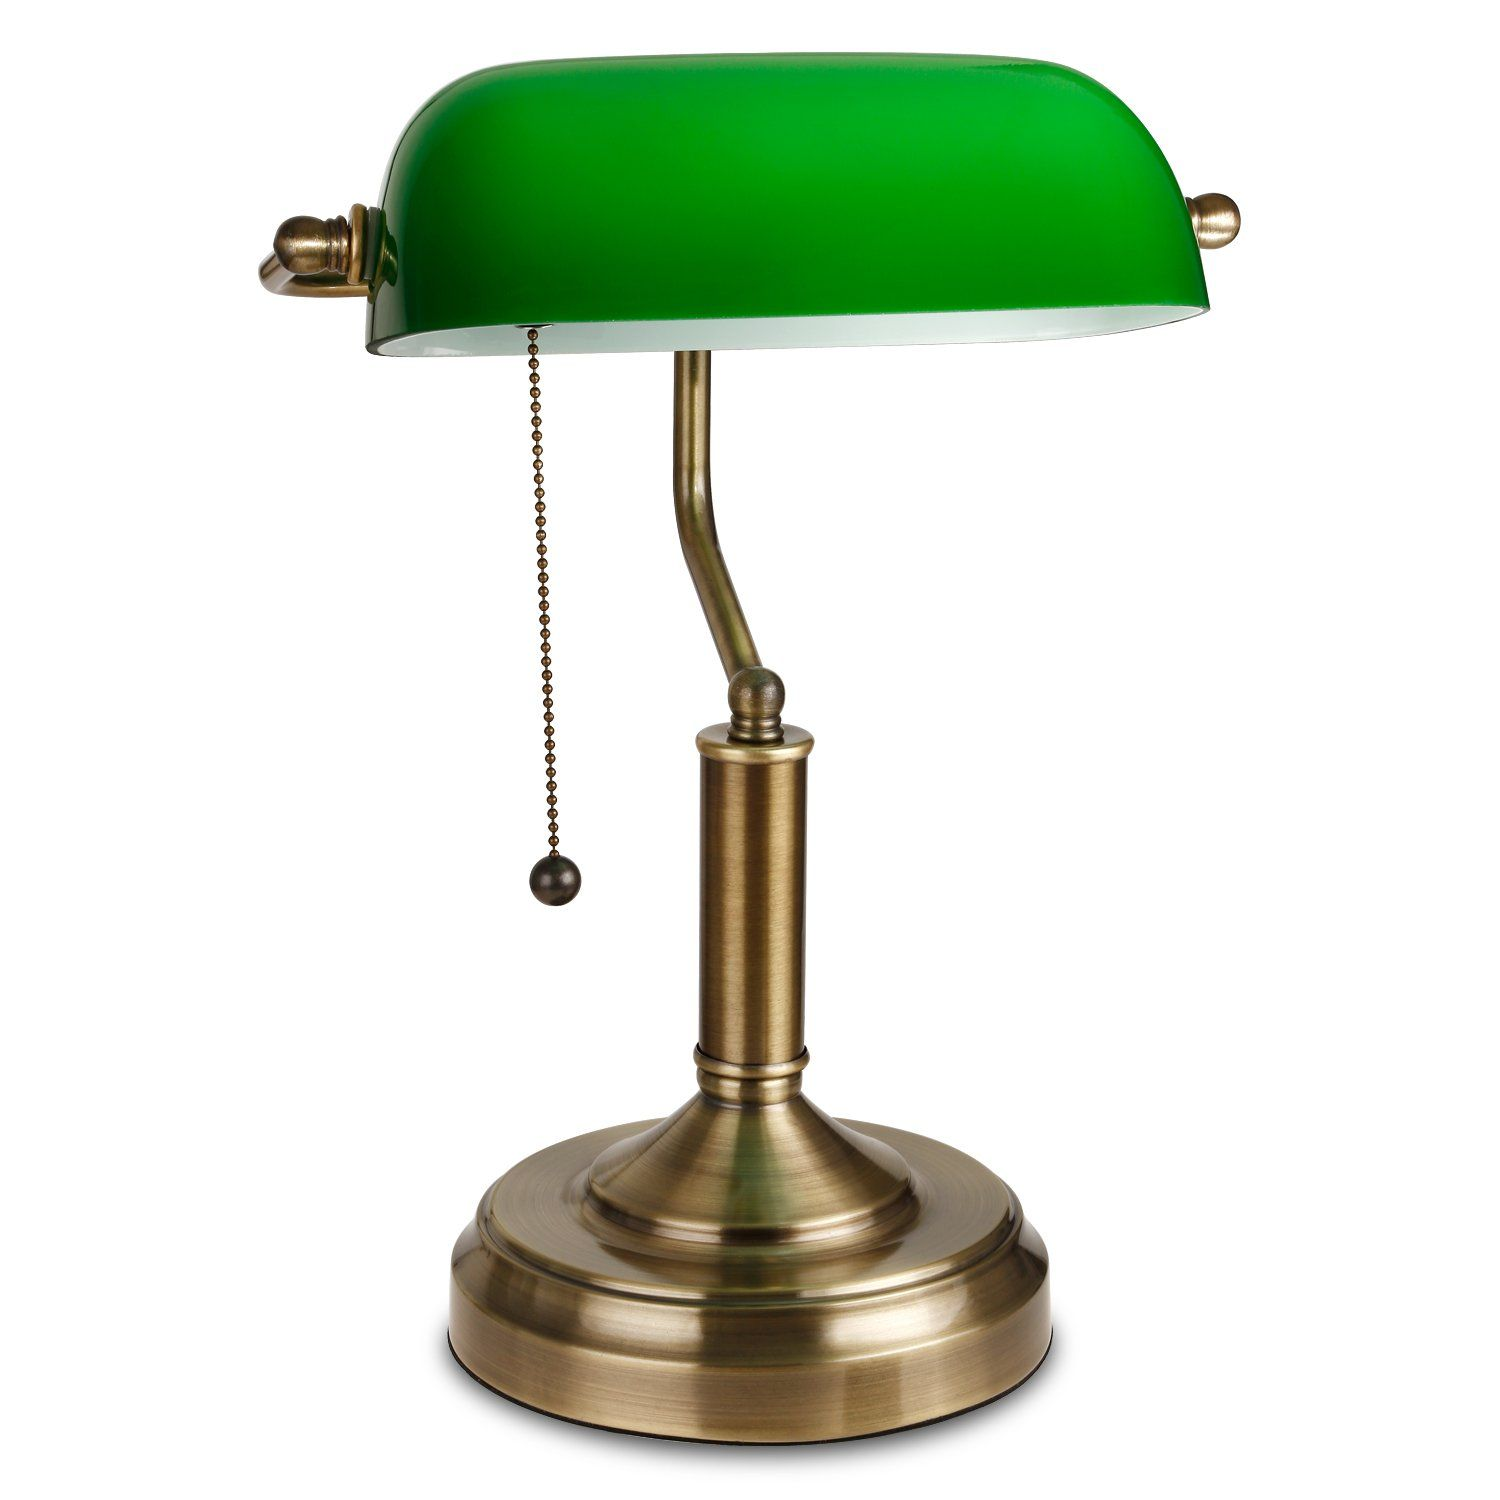 Emerald green table lamp - Torchstar Traditional Banker S Lamp Antique Style Emerald Green Glass Desk Light Fixture Satin Brass